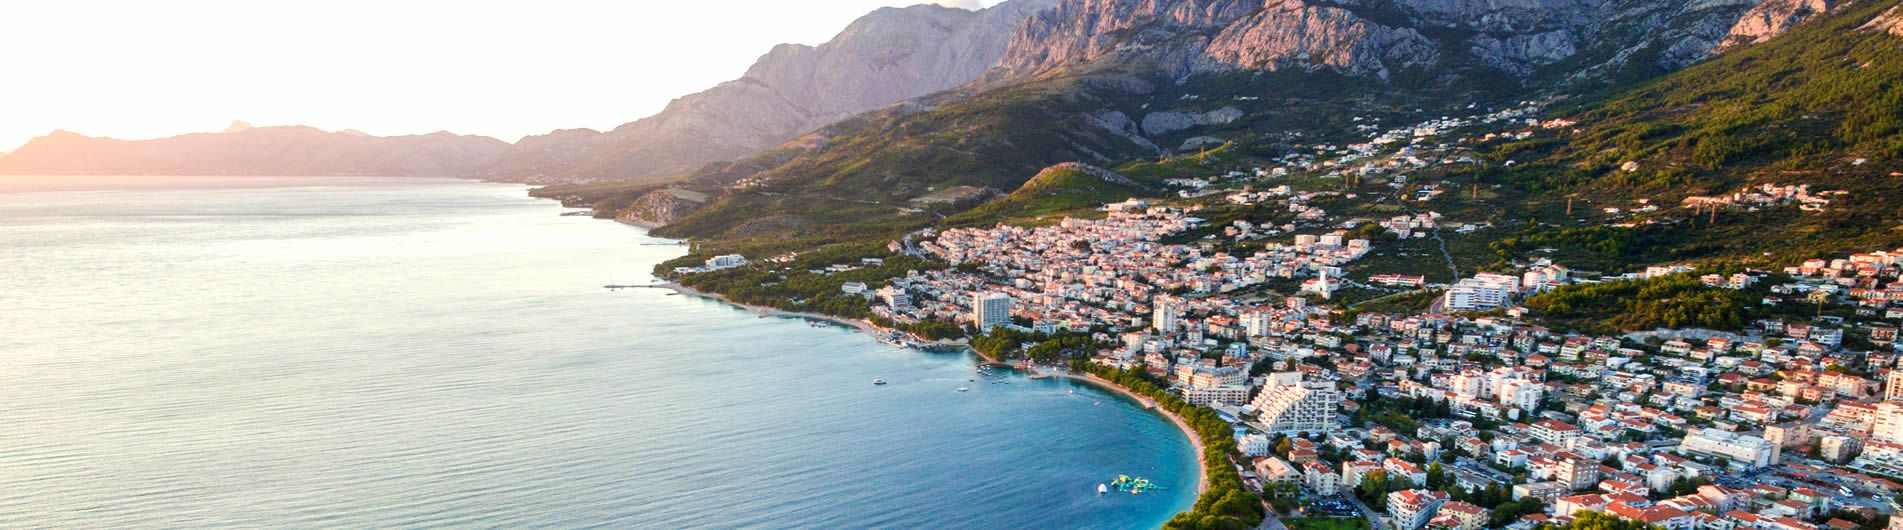 Exploring The Makarska Riviera